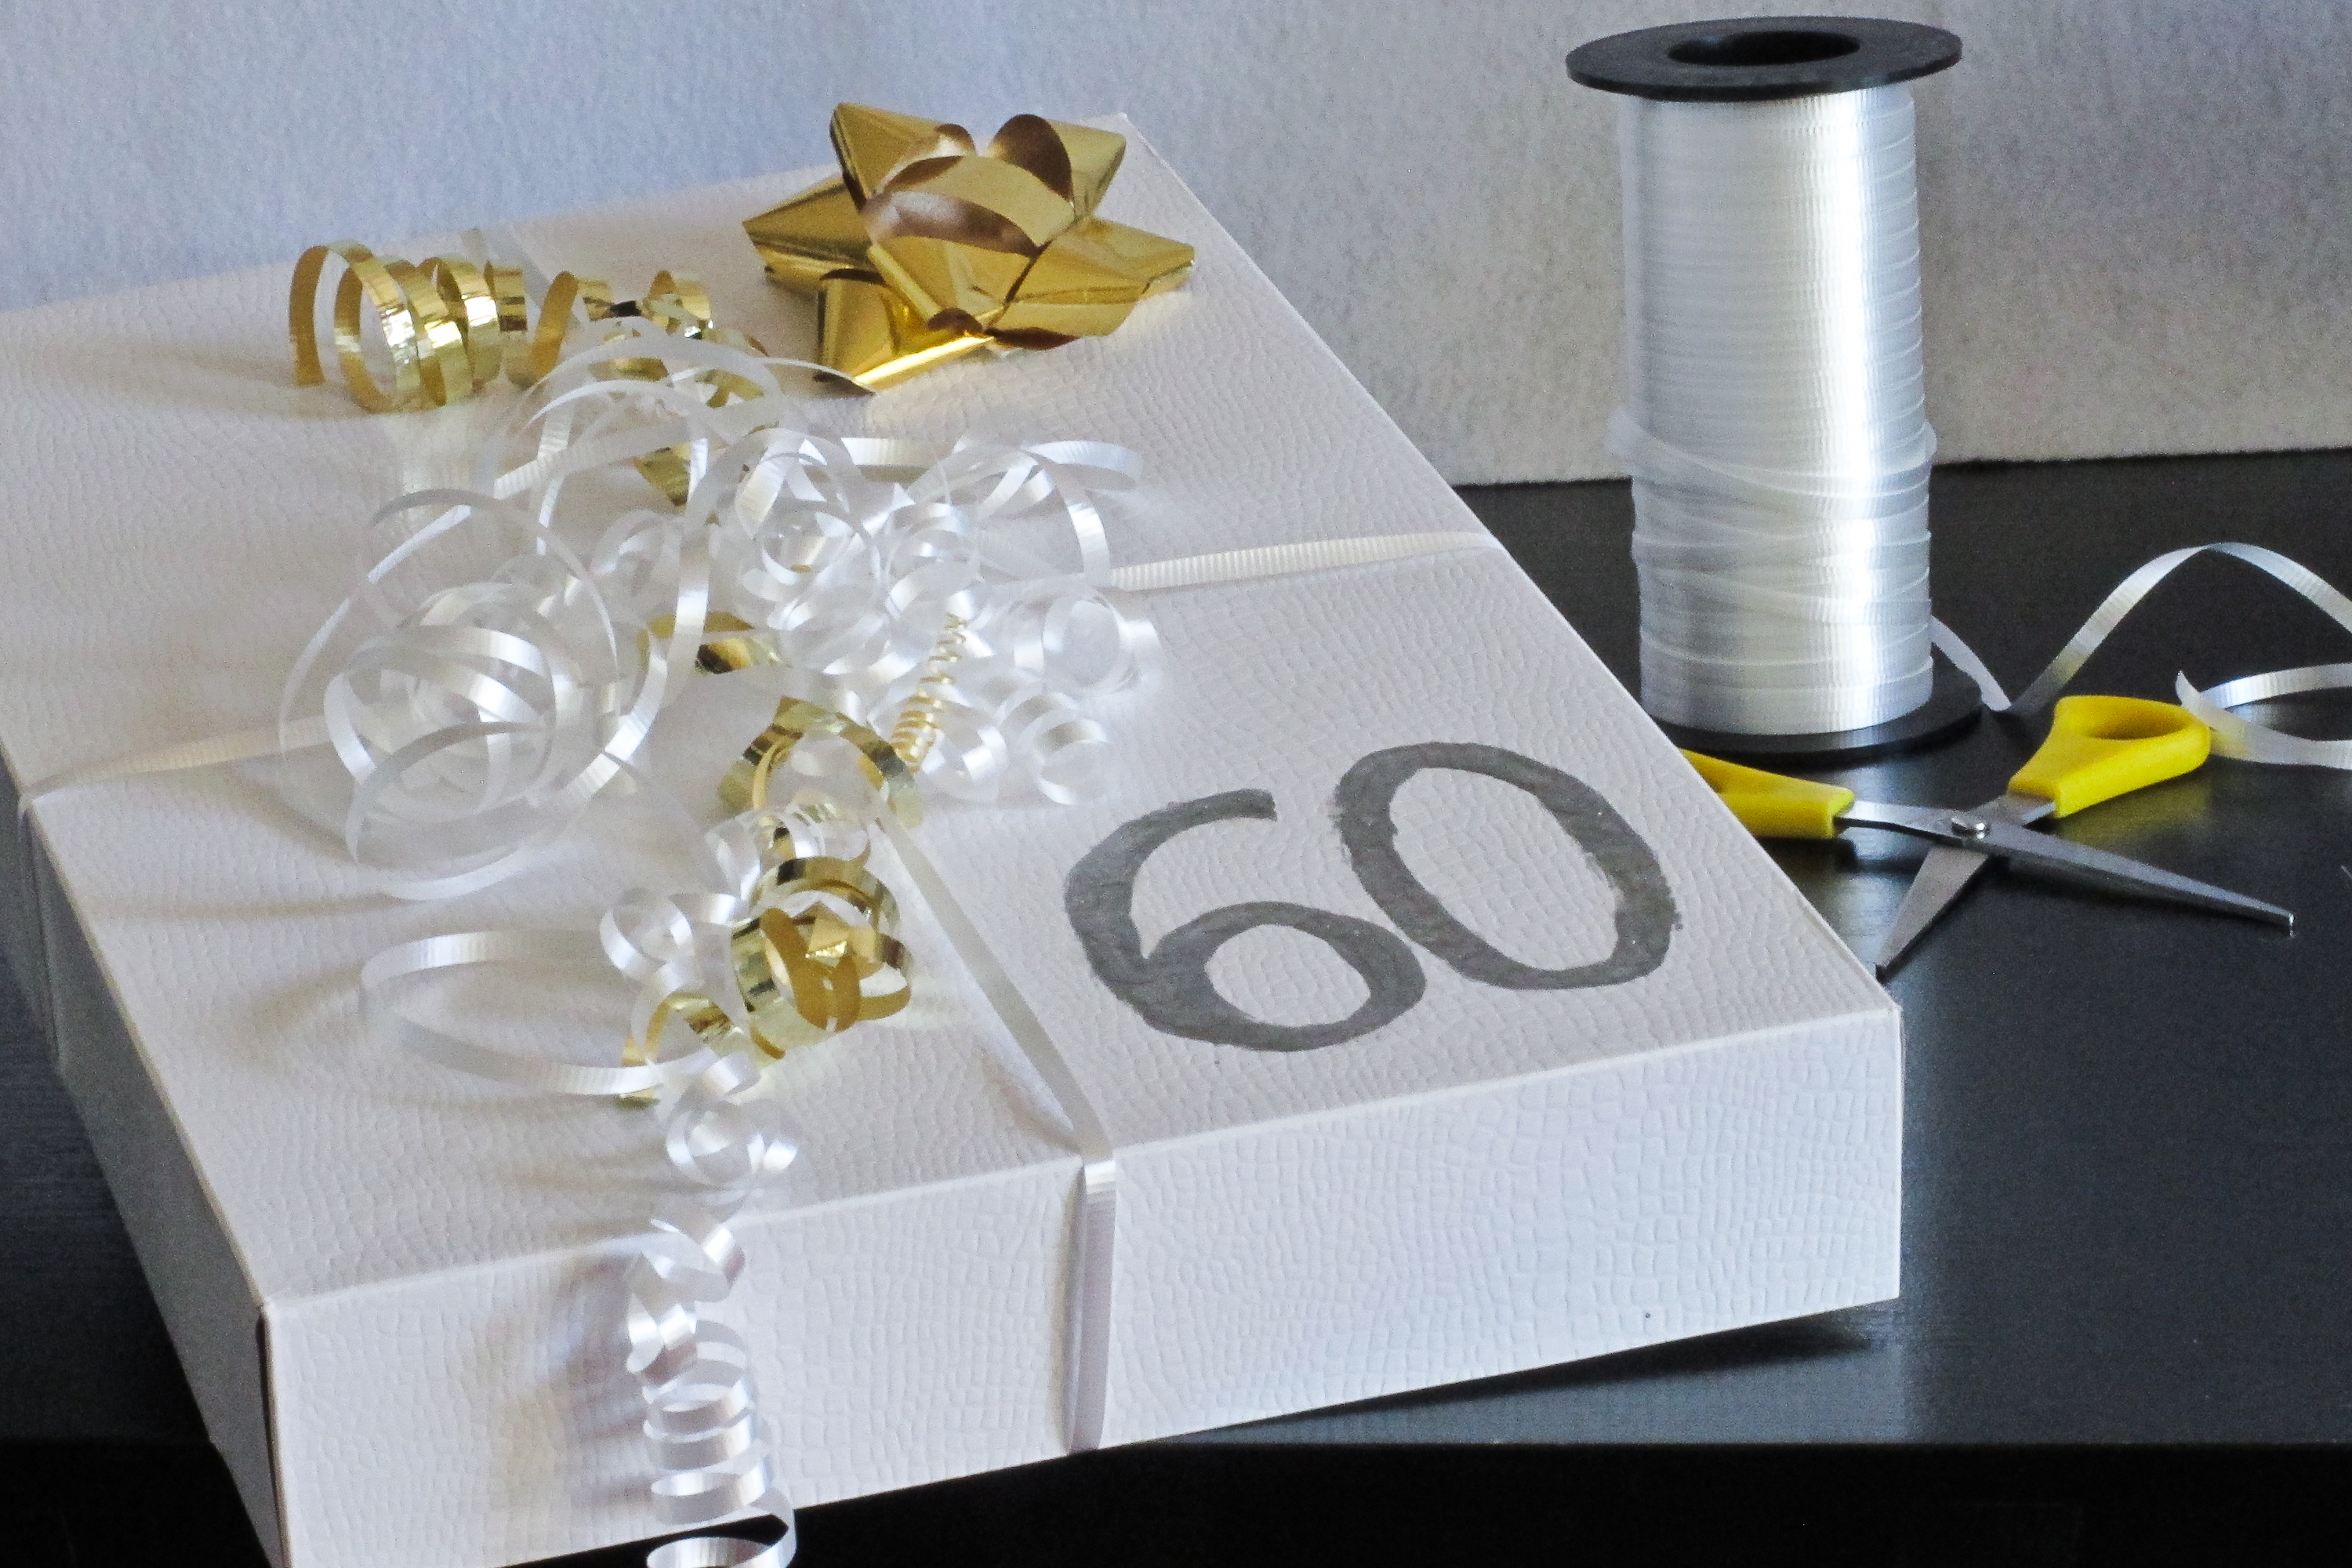 60th wedding anniversary gifts for parents our everyday life for Best gift for wedding anniversary